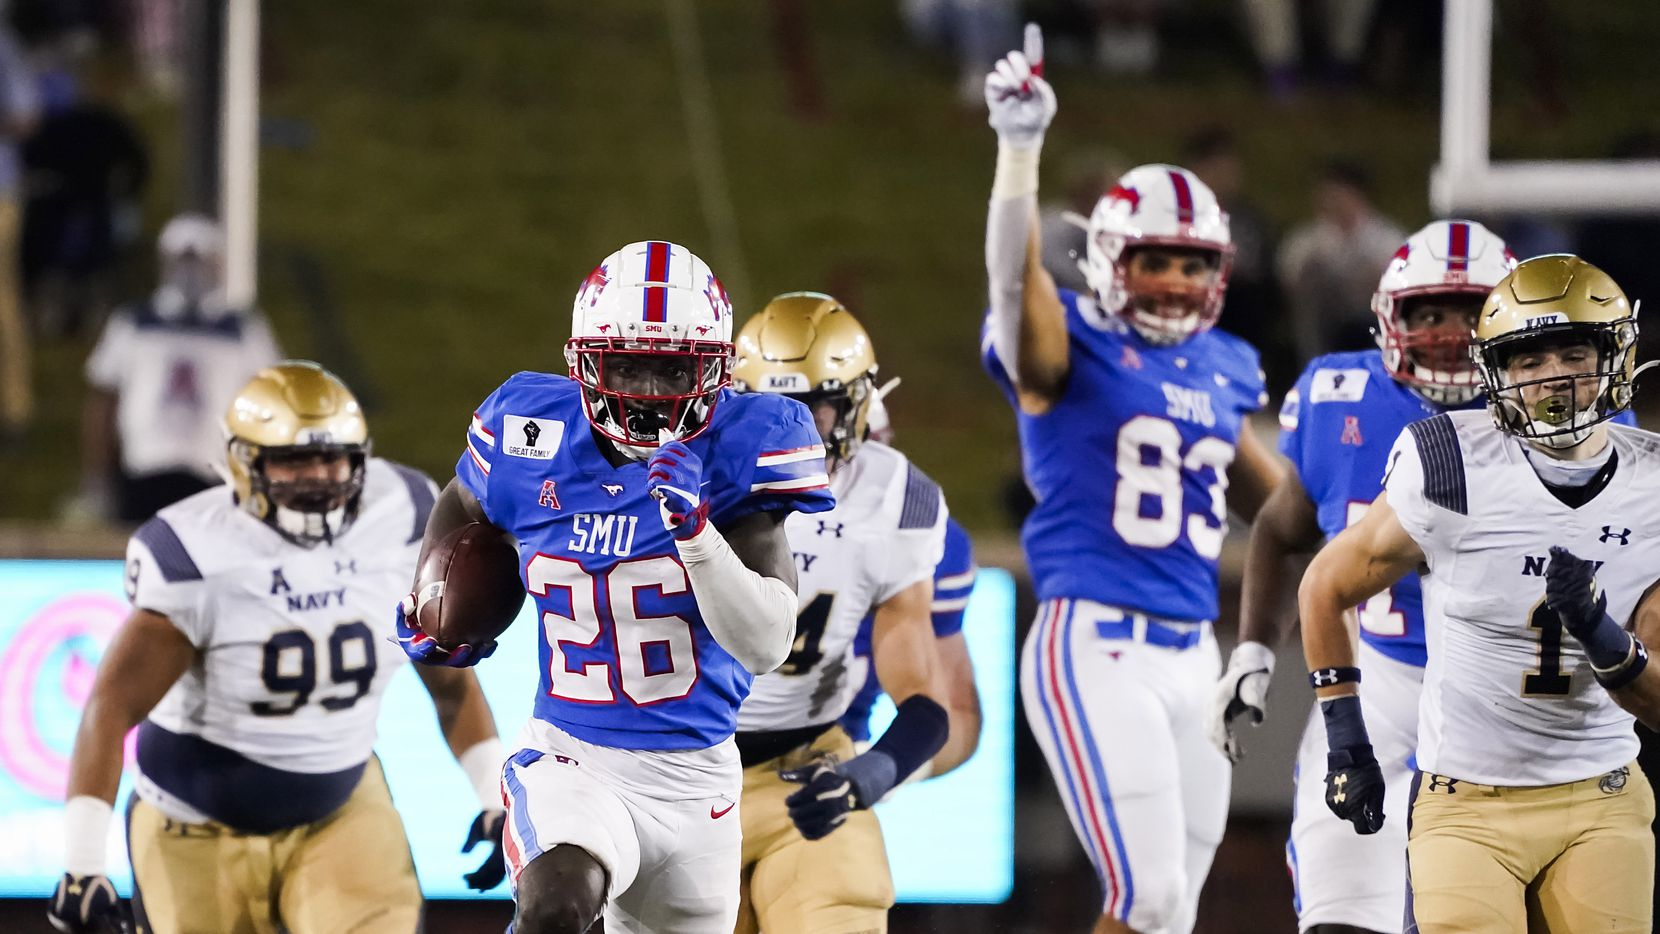 SMU running back Ulysses Bentley IV (26) gets by Navy linebacker John Marshall (1) on a 36-yard run during the second quarter of a game at Ford Stadium on Saturday, Oct. 31, 2020, in Dallas.